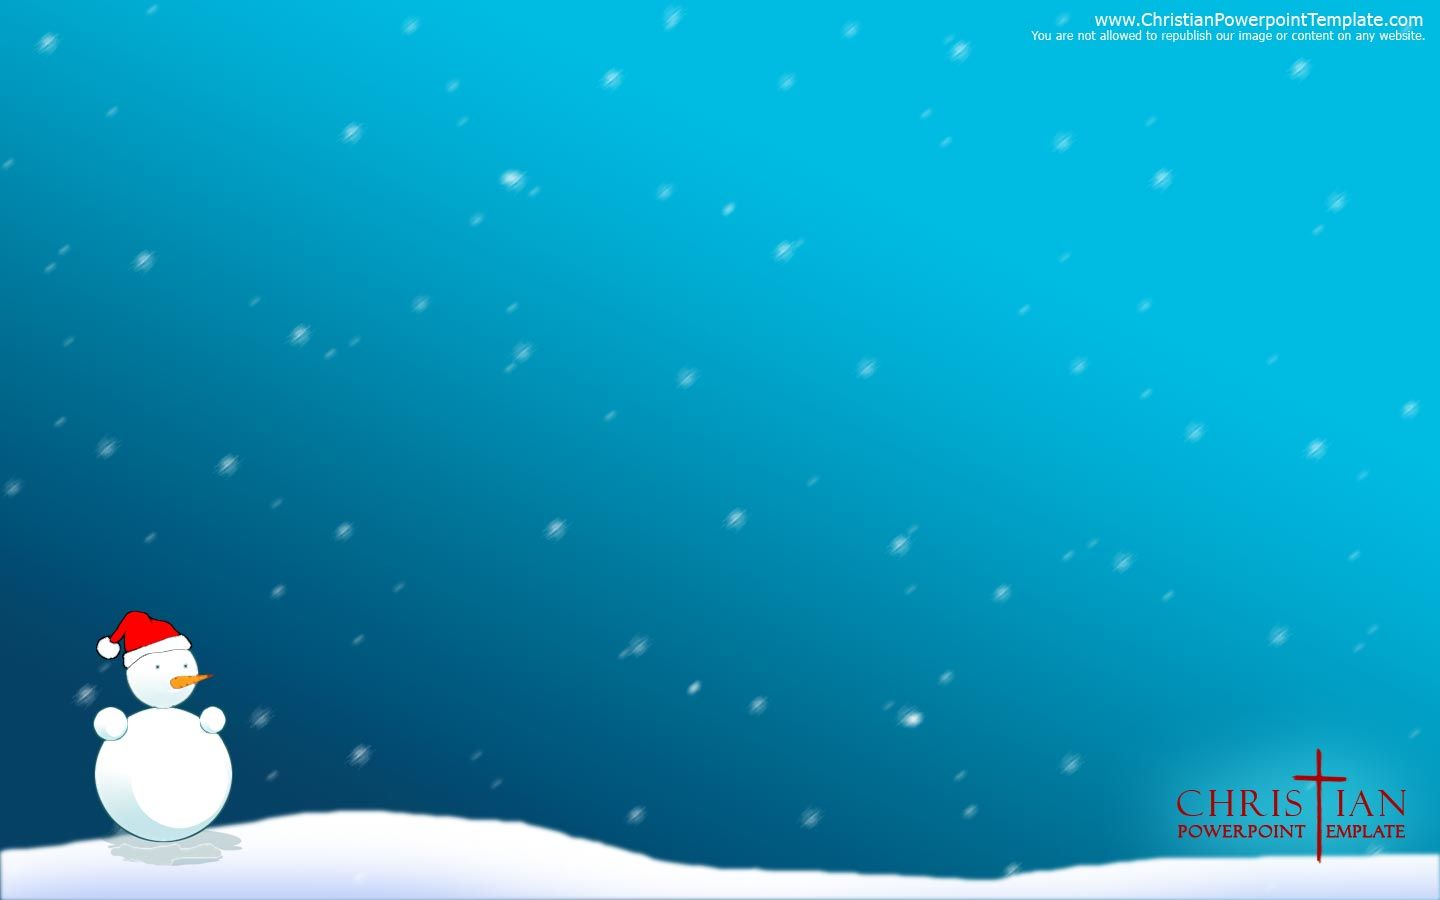 Image detail for powerpoint template blog archive snowman christmas background lol for Christmas ppt theme